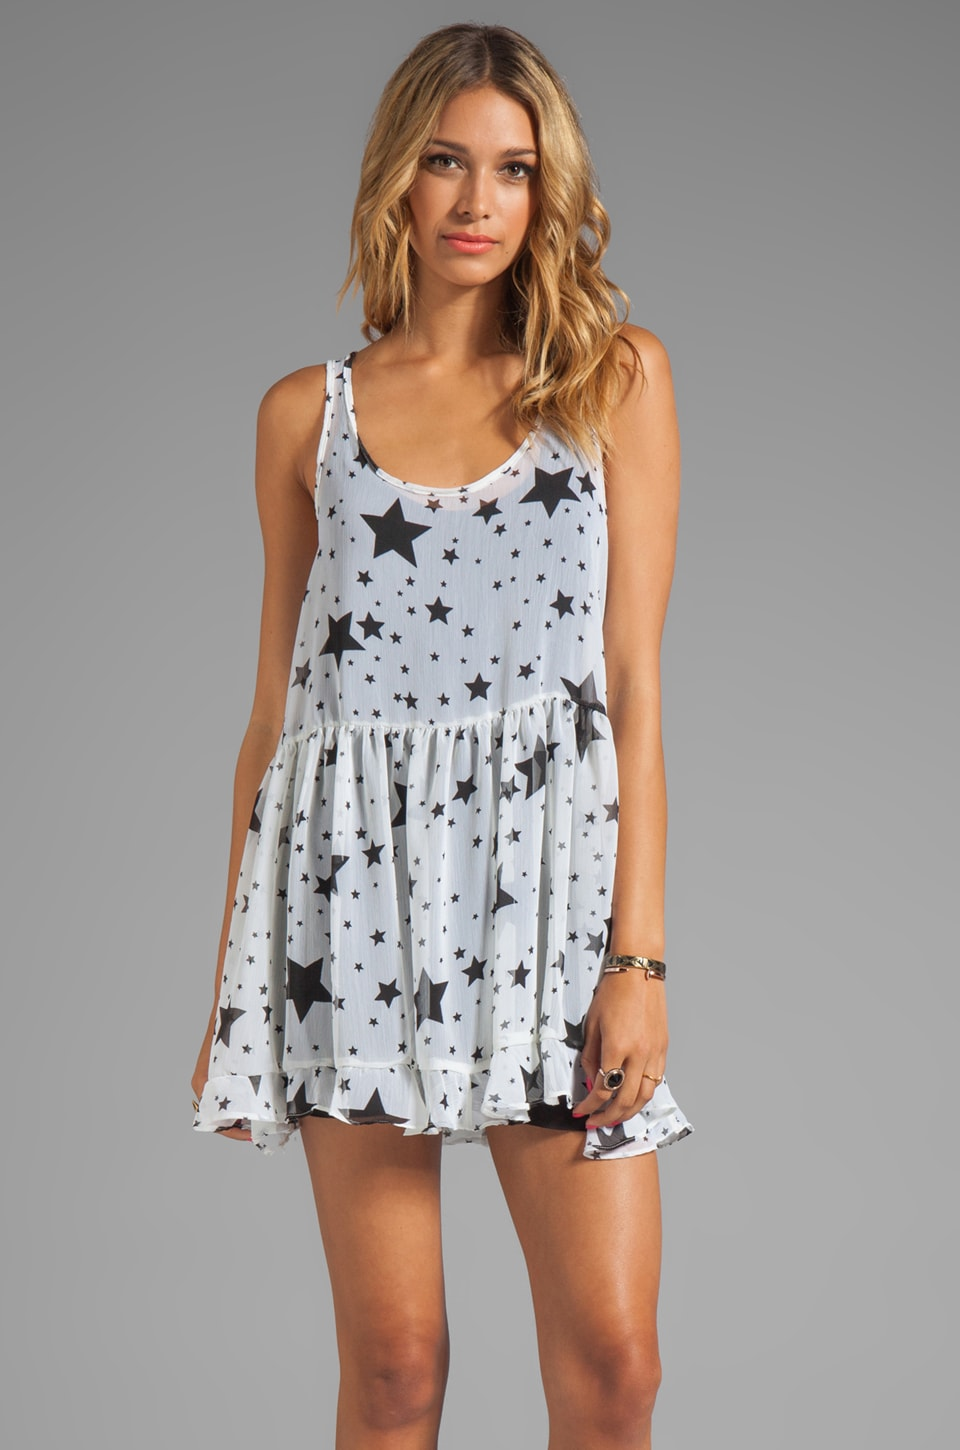 Tylie Mina Tank Dress in Starry Night